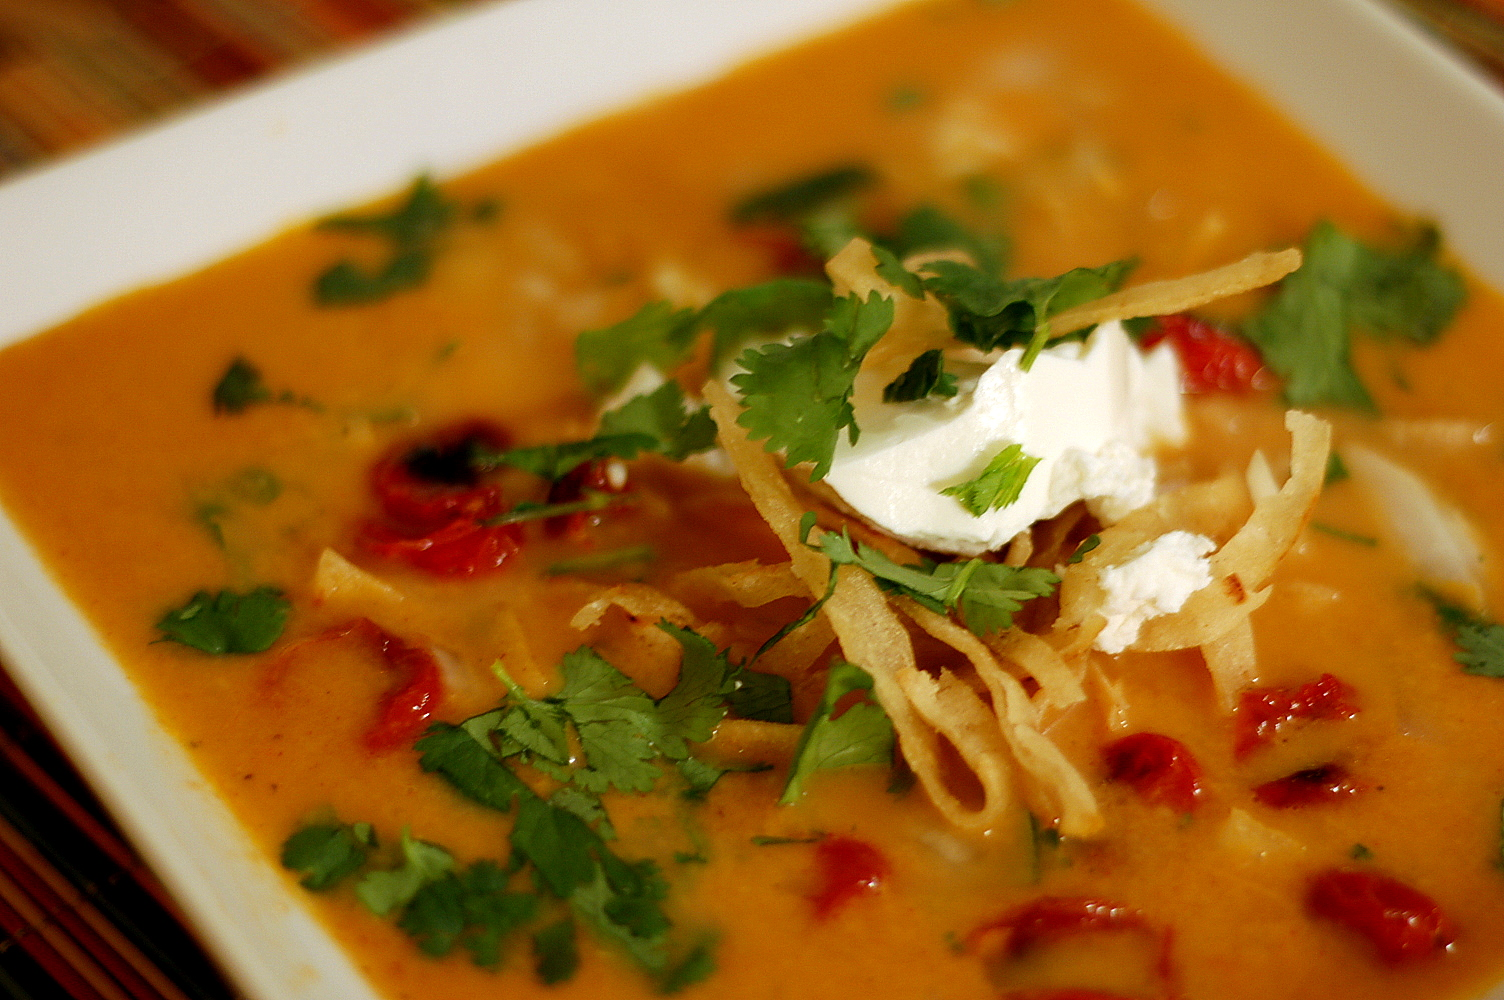 The Grains of Paradise: Vegetarian Tortilla Soup